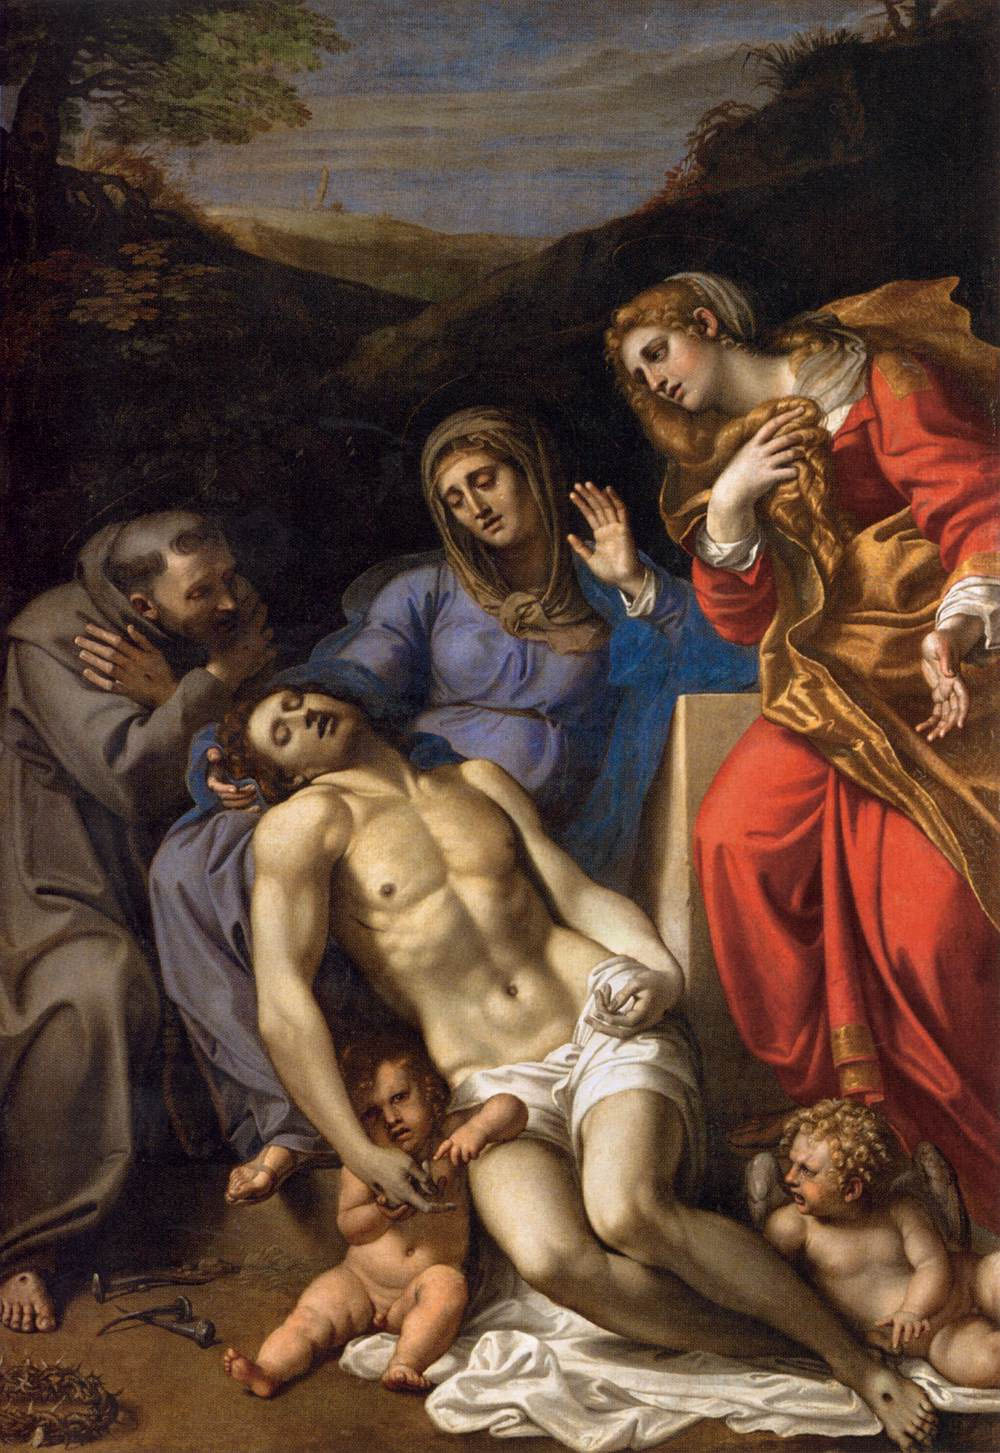 http://alenarterevista.files.wordpress.com/2010/01/carracci1502-71.jpg